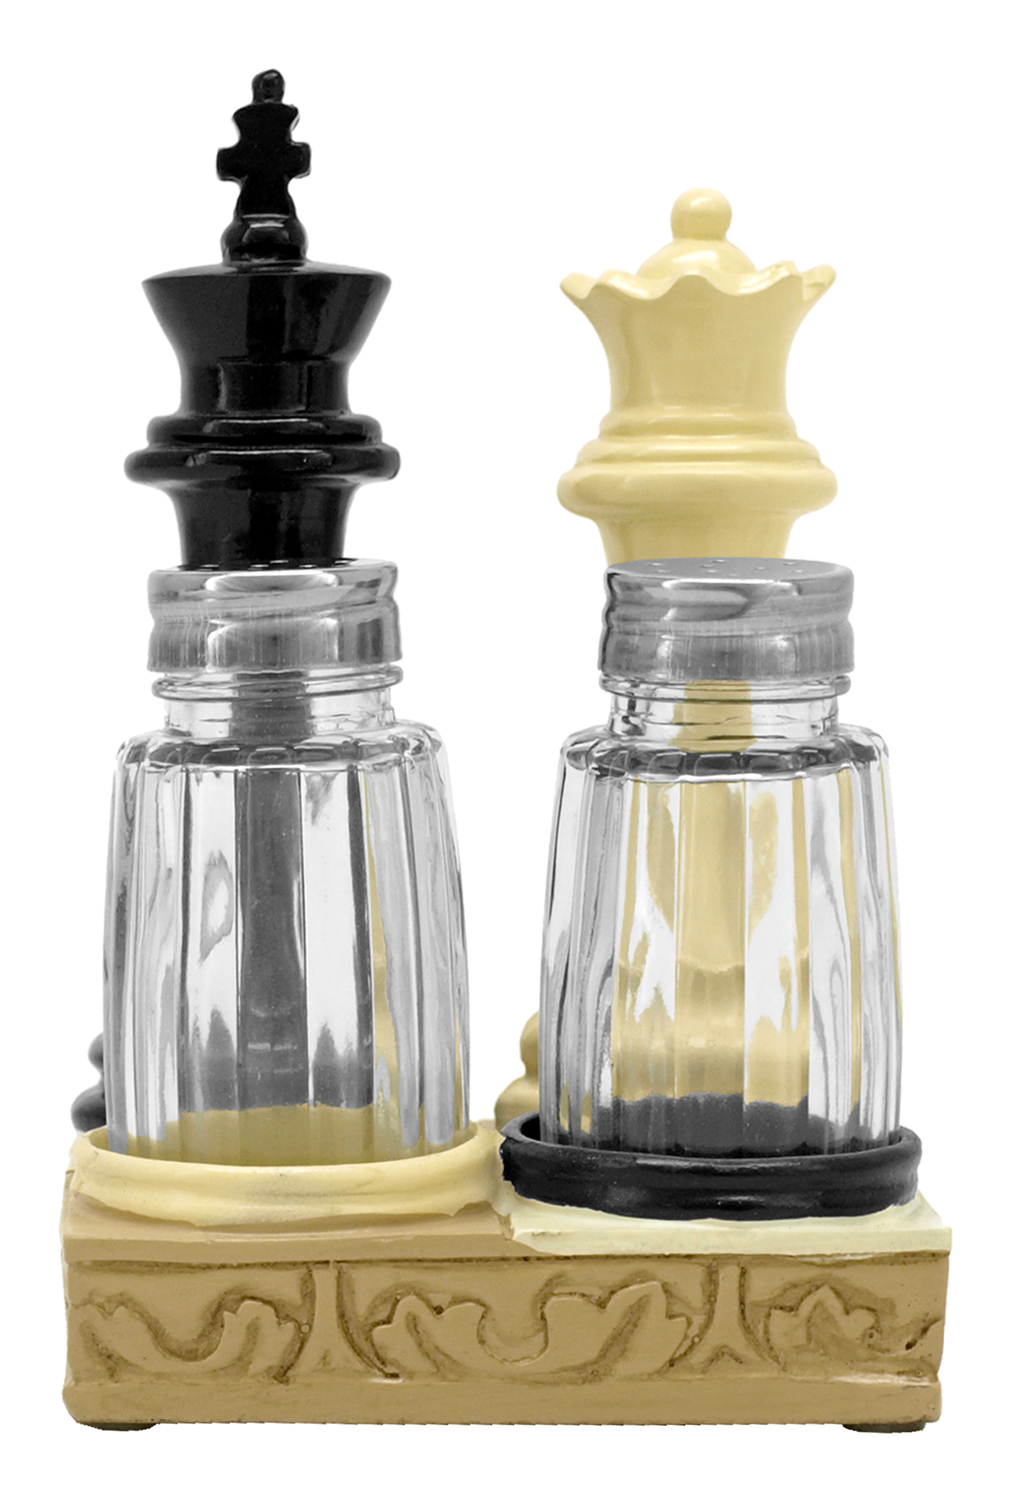 Checkmate Spice Salt and Pepper Shaker Holder